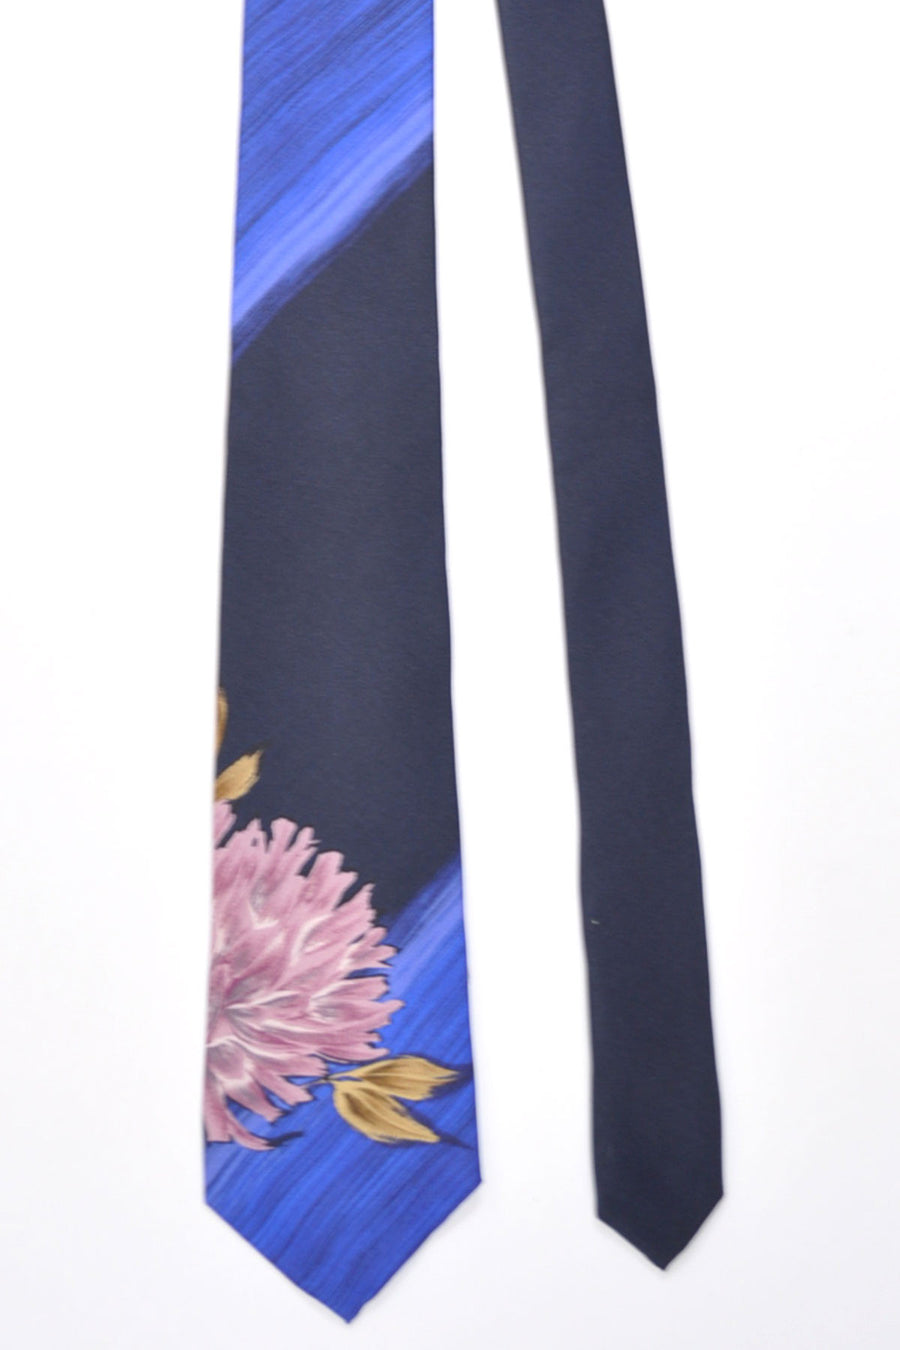 Kenzo Narrow Tie Black Navy Blue Dust Pink Floral